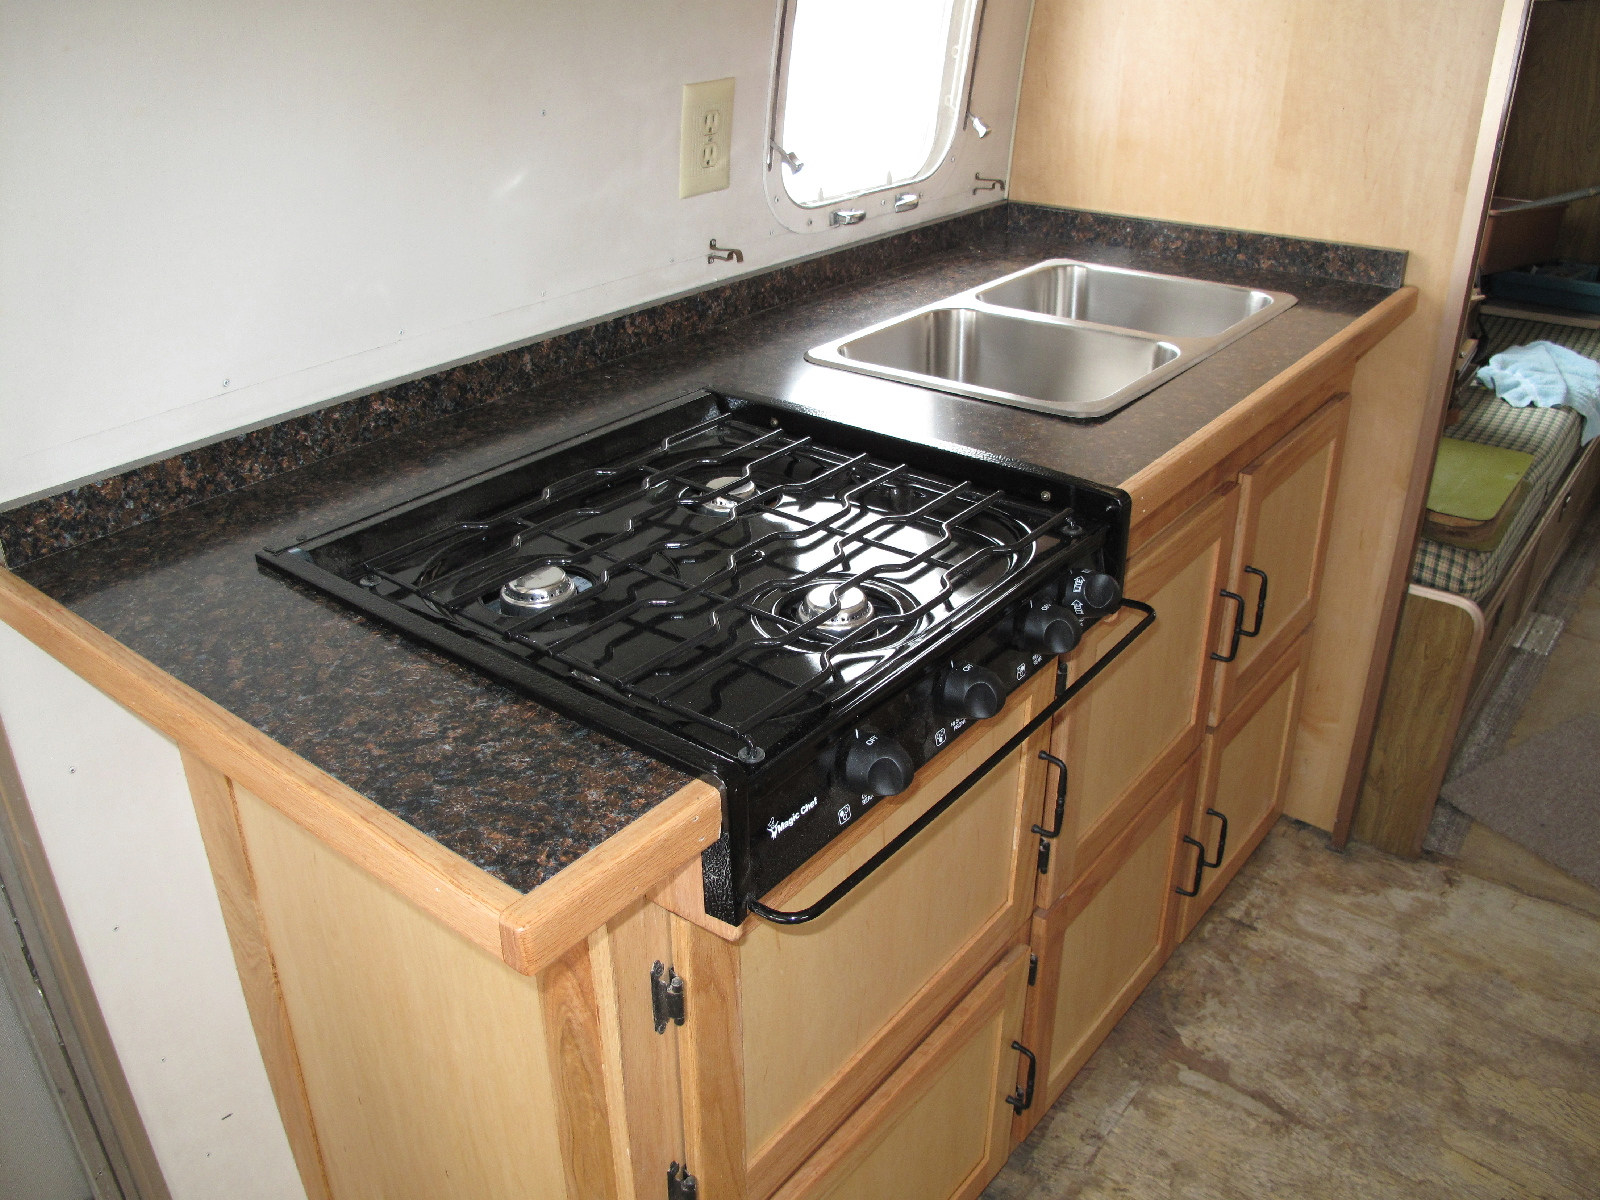 Click image for larger version  Name:Cooktop and Sink.jpg Views:74 Size:998.3 KB ID:95503